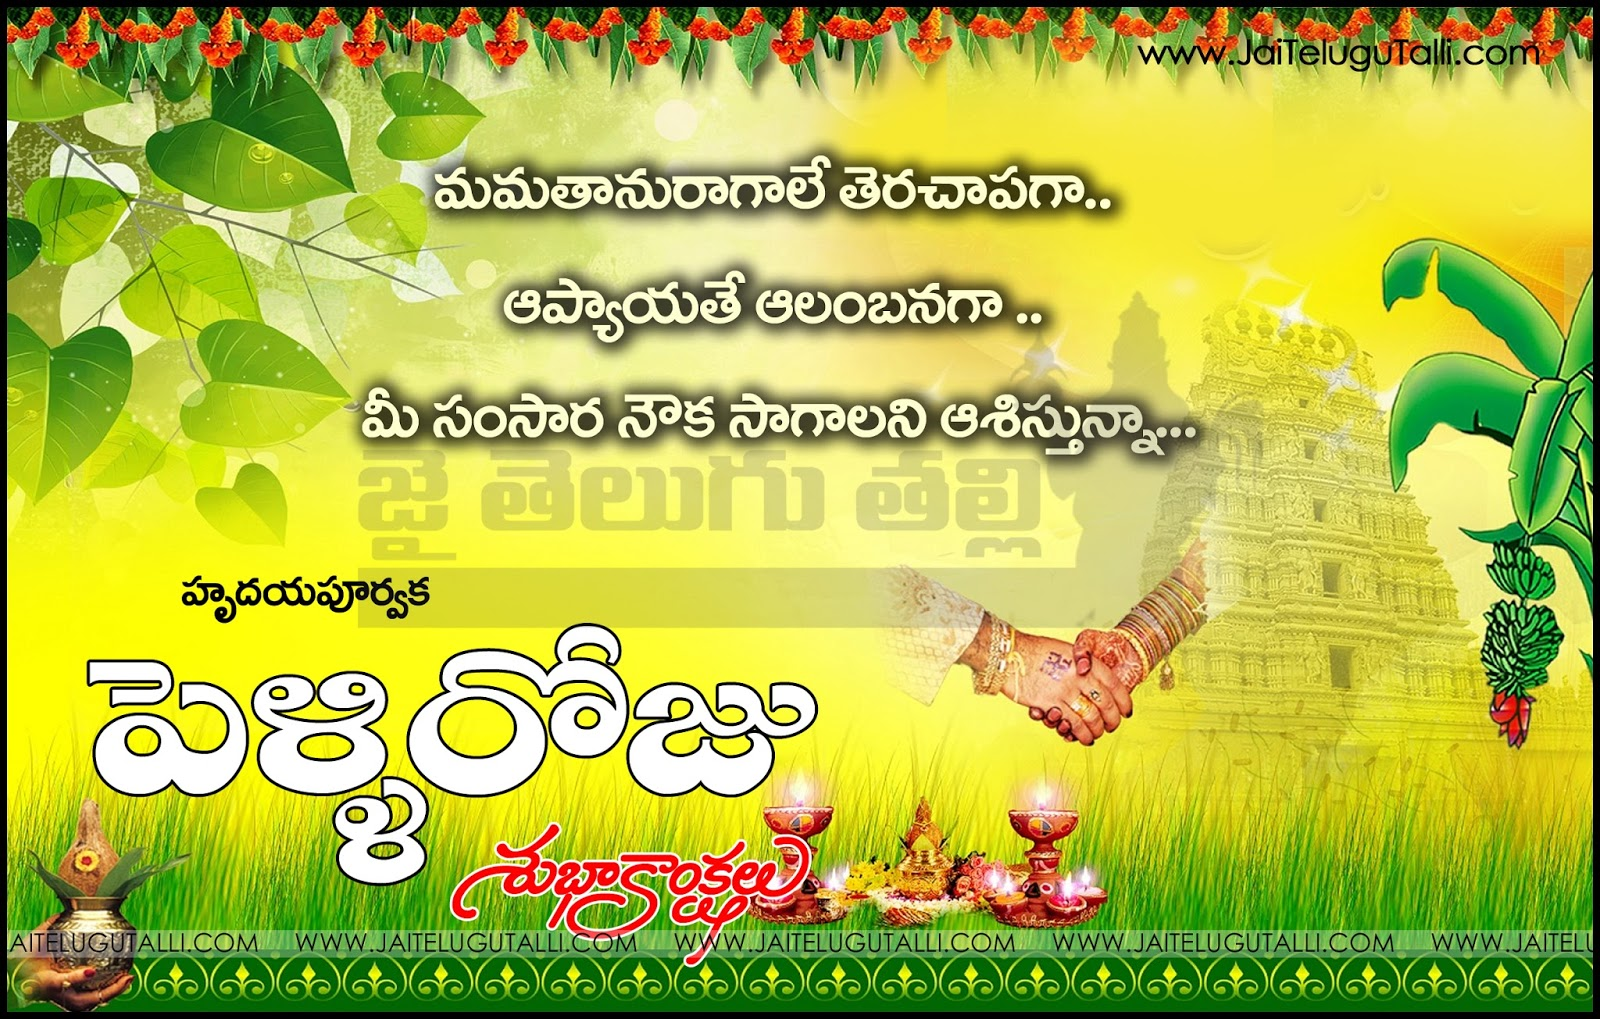 Telugu Marriage Day Wishes And Telugu Quotations Best Greetings Hd